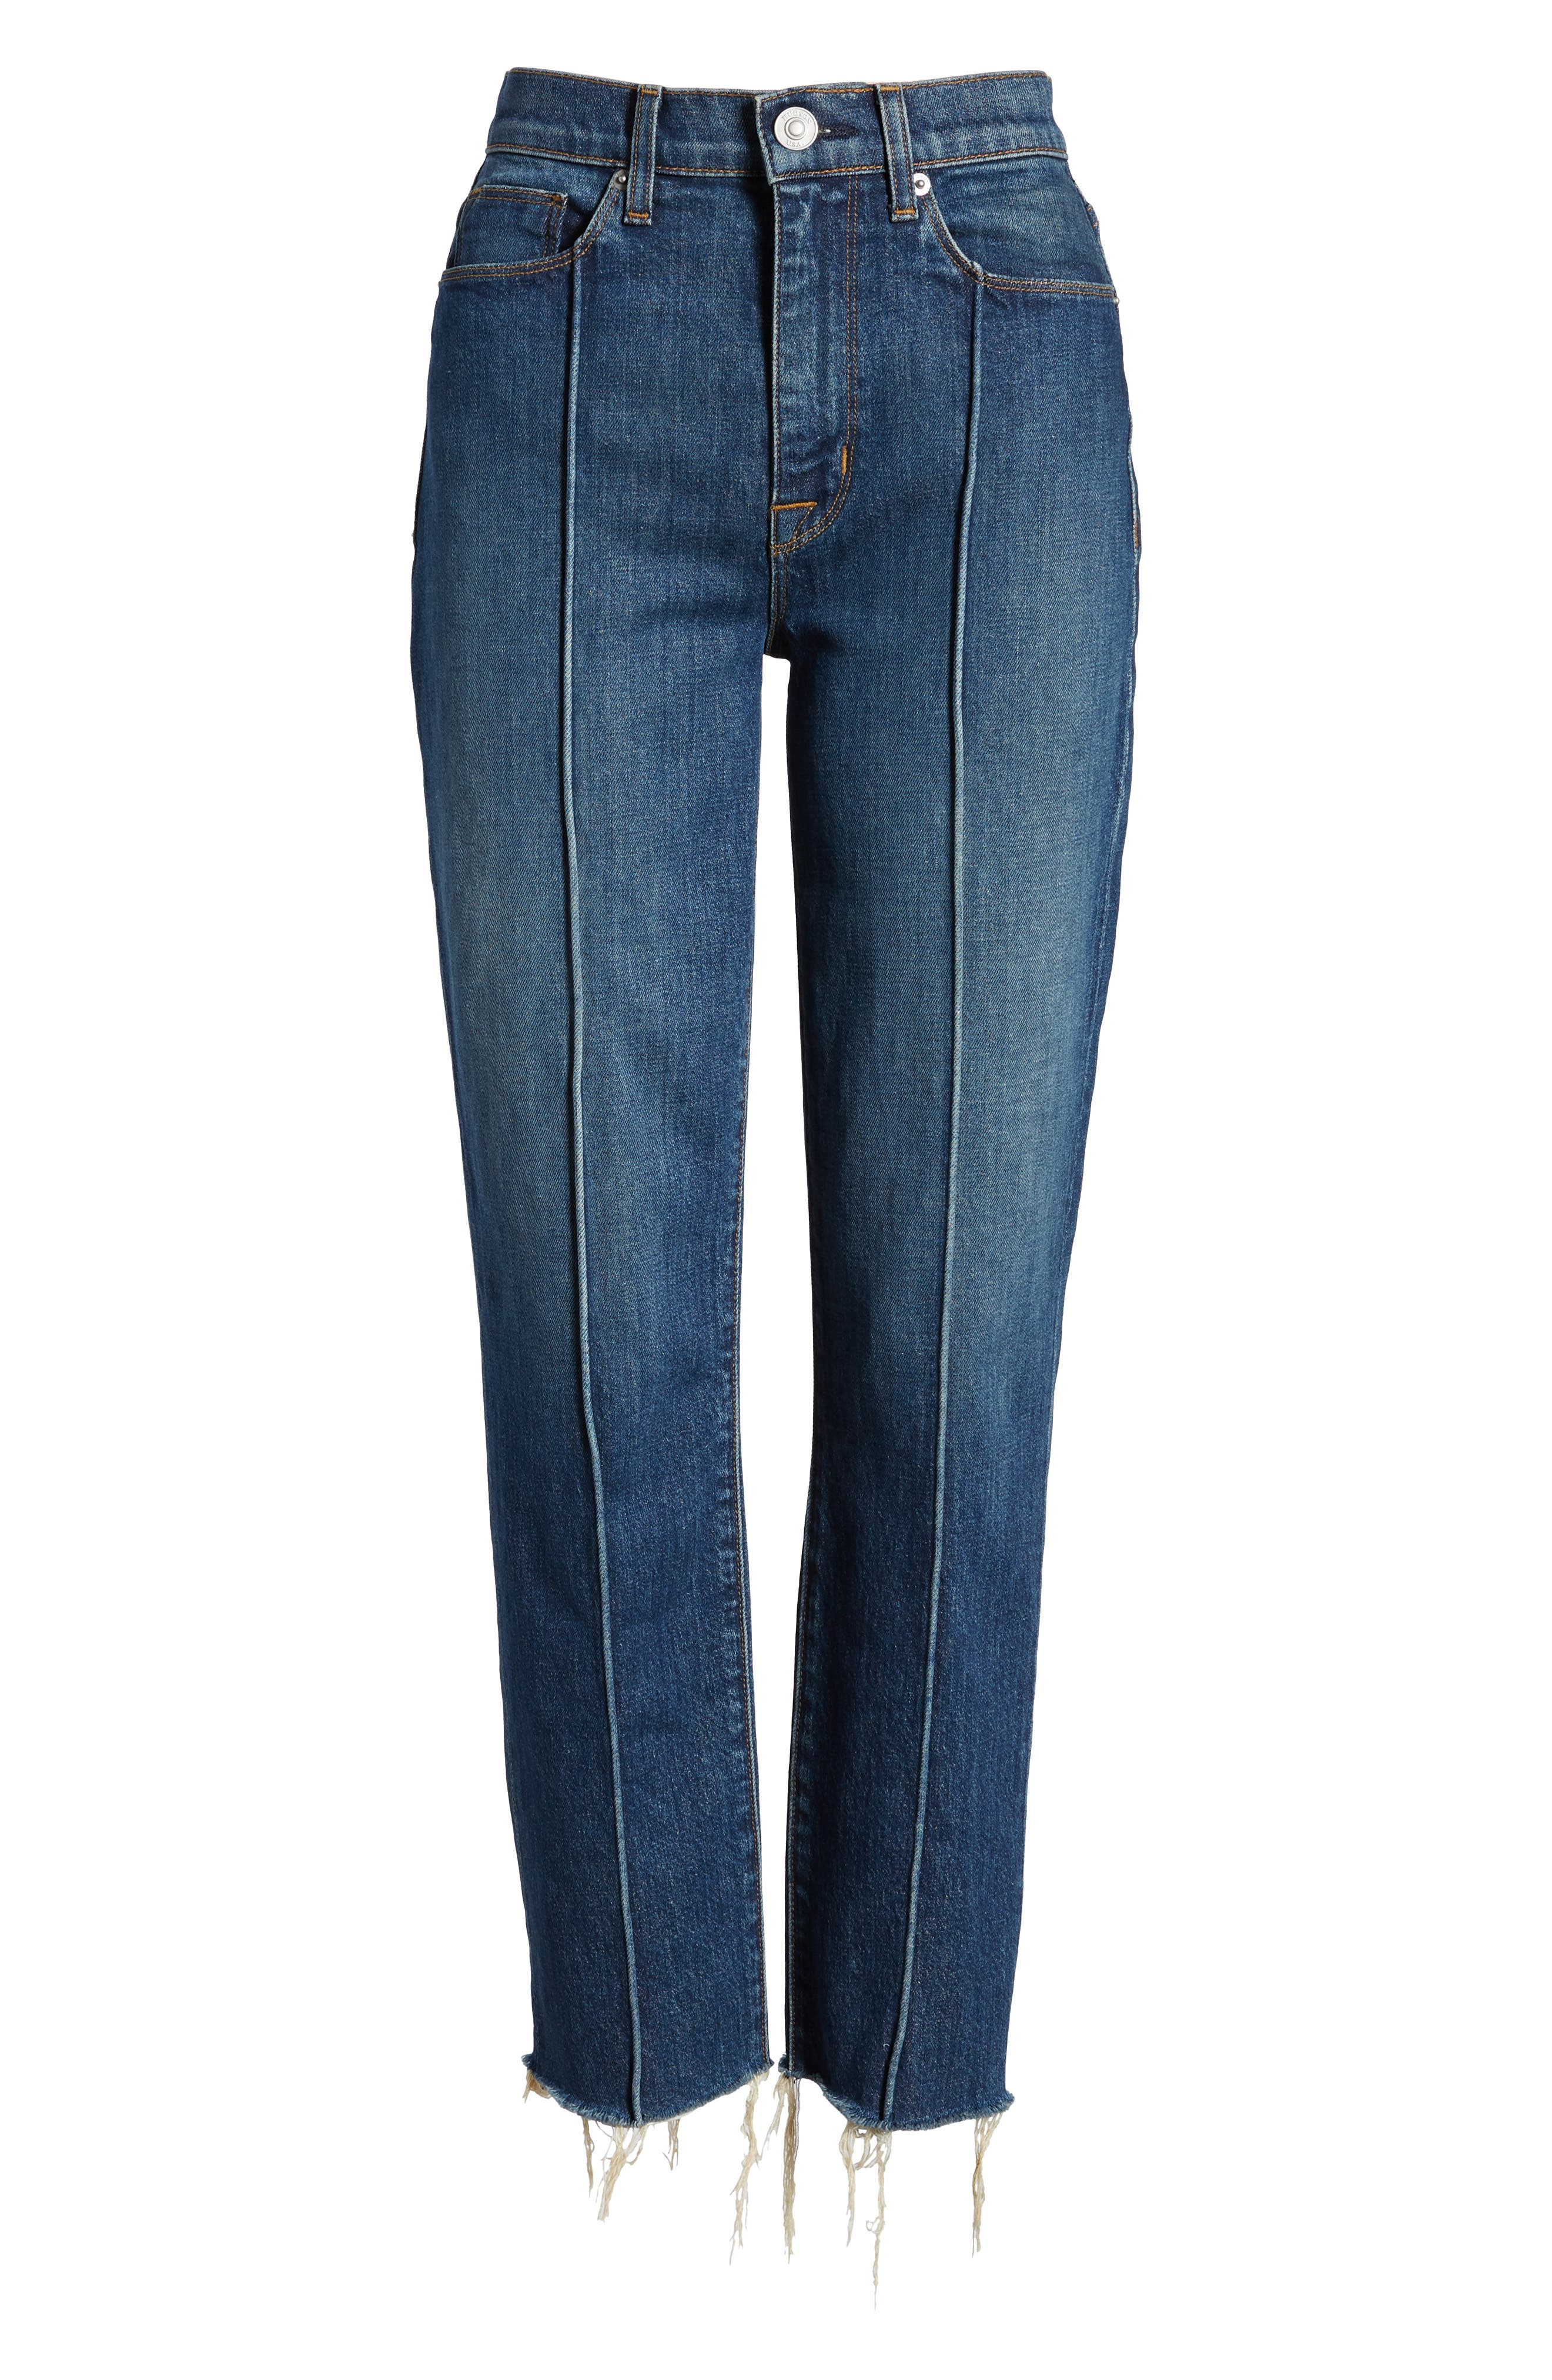 Zoeey High Waist Crop Straight Leg Jeans,                             Alternate thumbnail 7, color,                             Demeanor